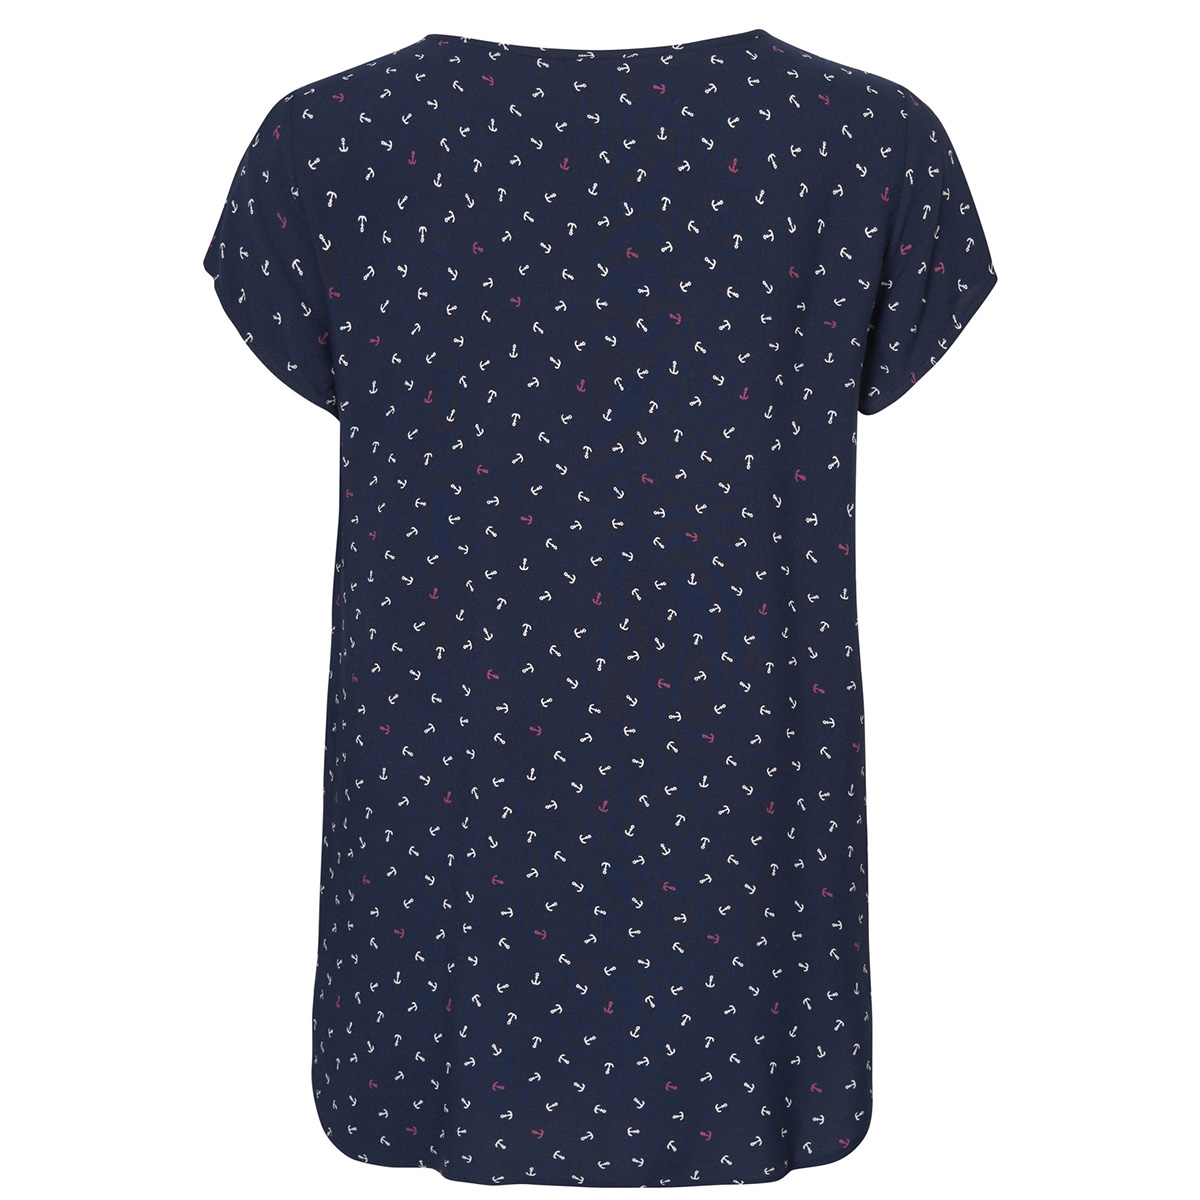 vmboca ss blouse multi aop 10132802 vero moda t-shirt night sky/anchor